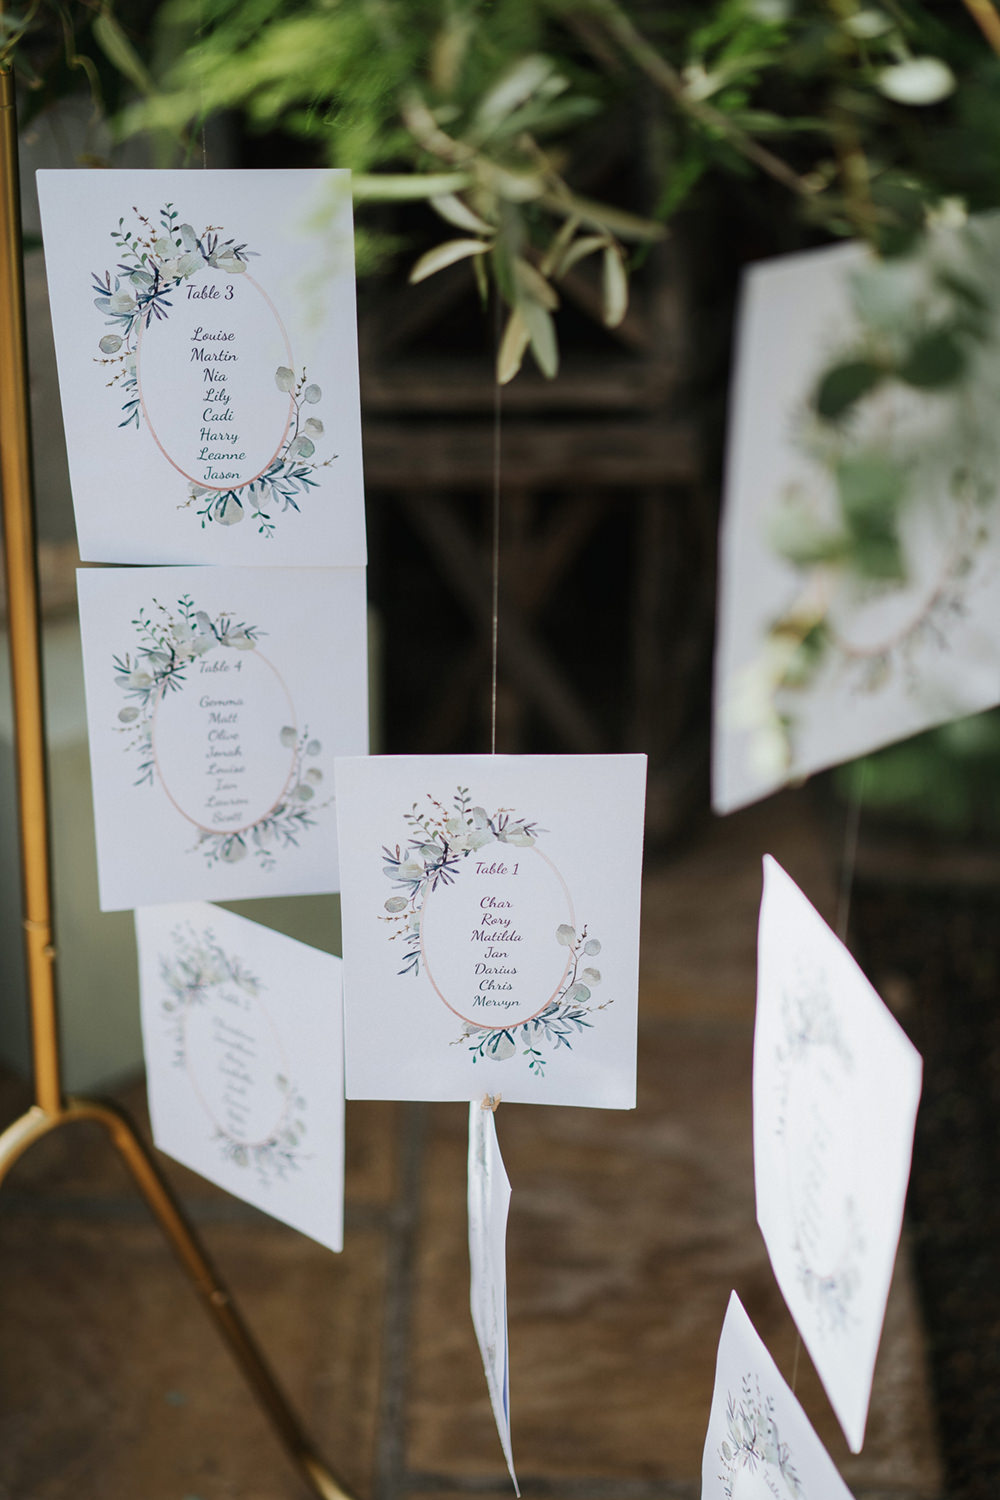 Seating Plan Table Chart Gold Frame Hanging Suspended Greenery Foliage Greenhouse Wedding Kit Myers Photography